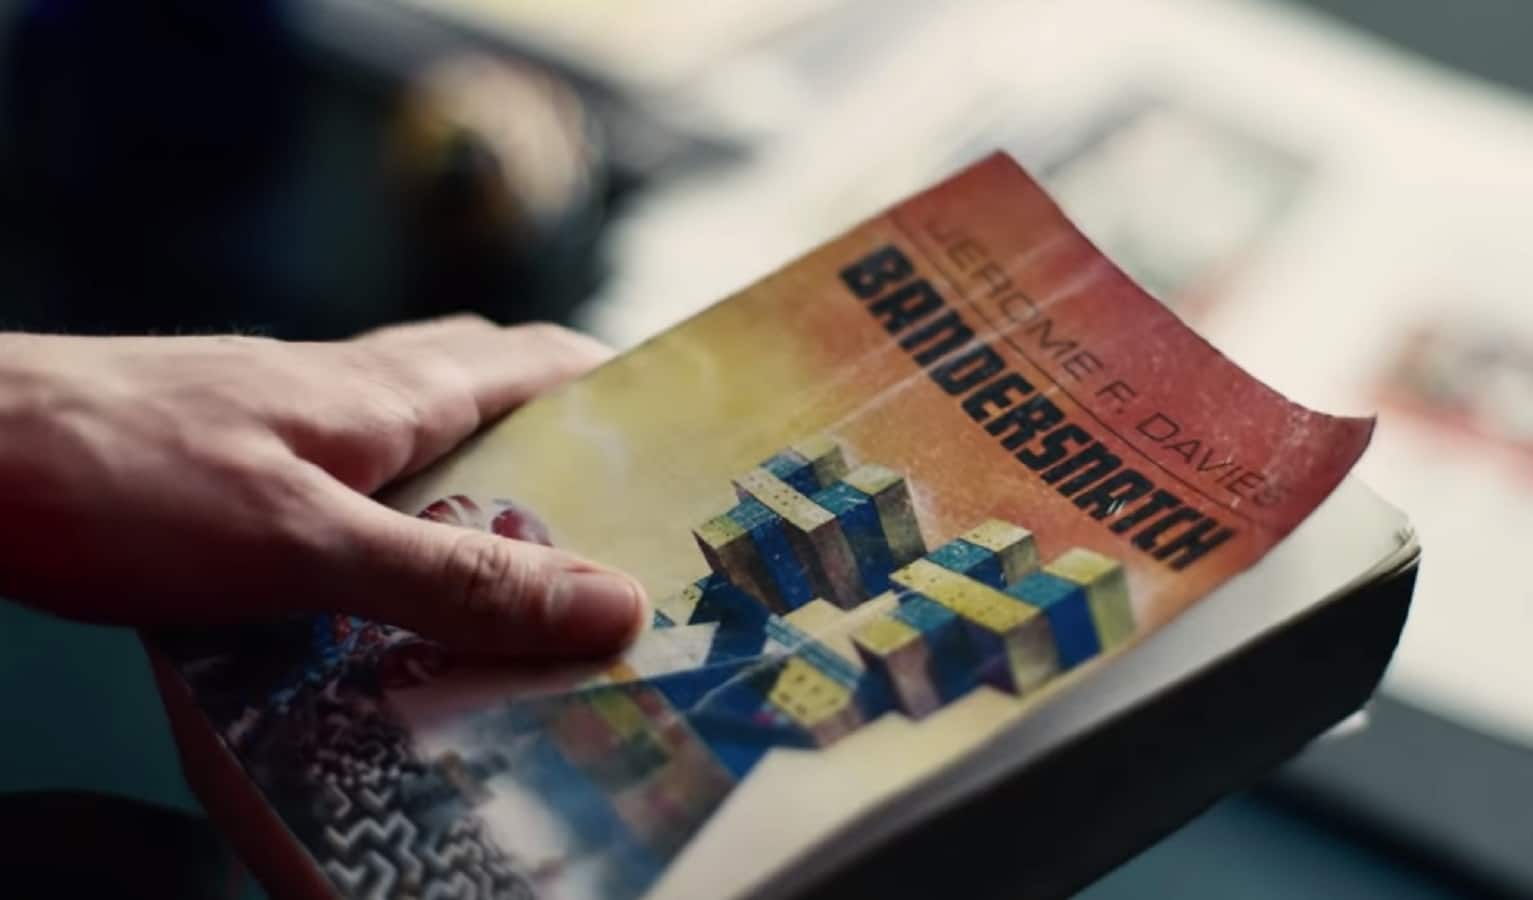 bandersnatch book for netflix black mirror movie